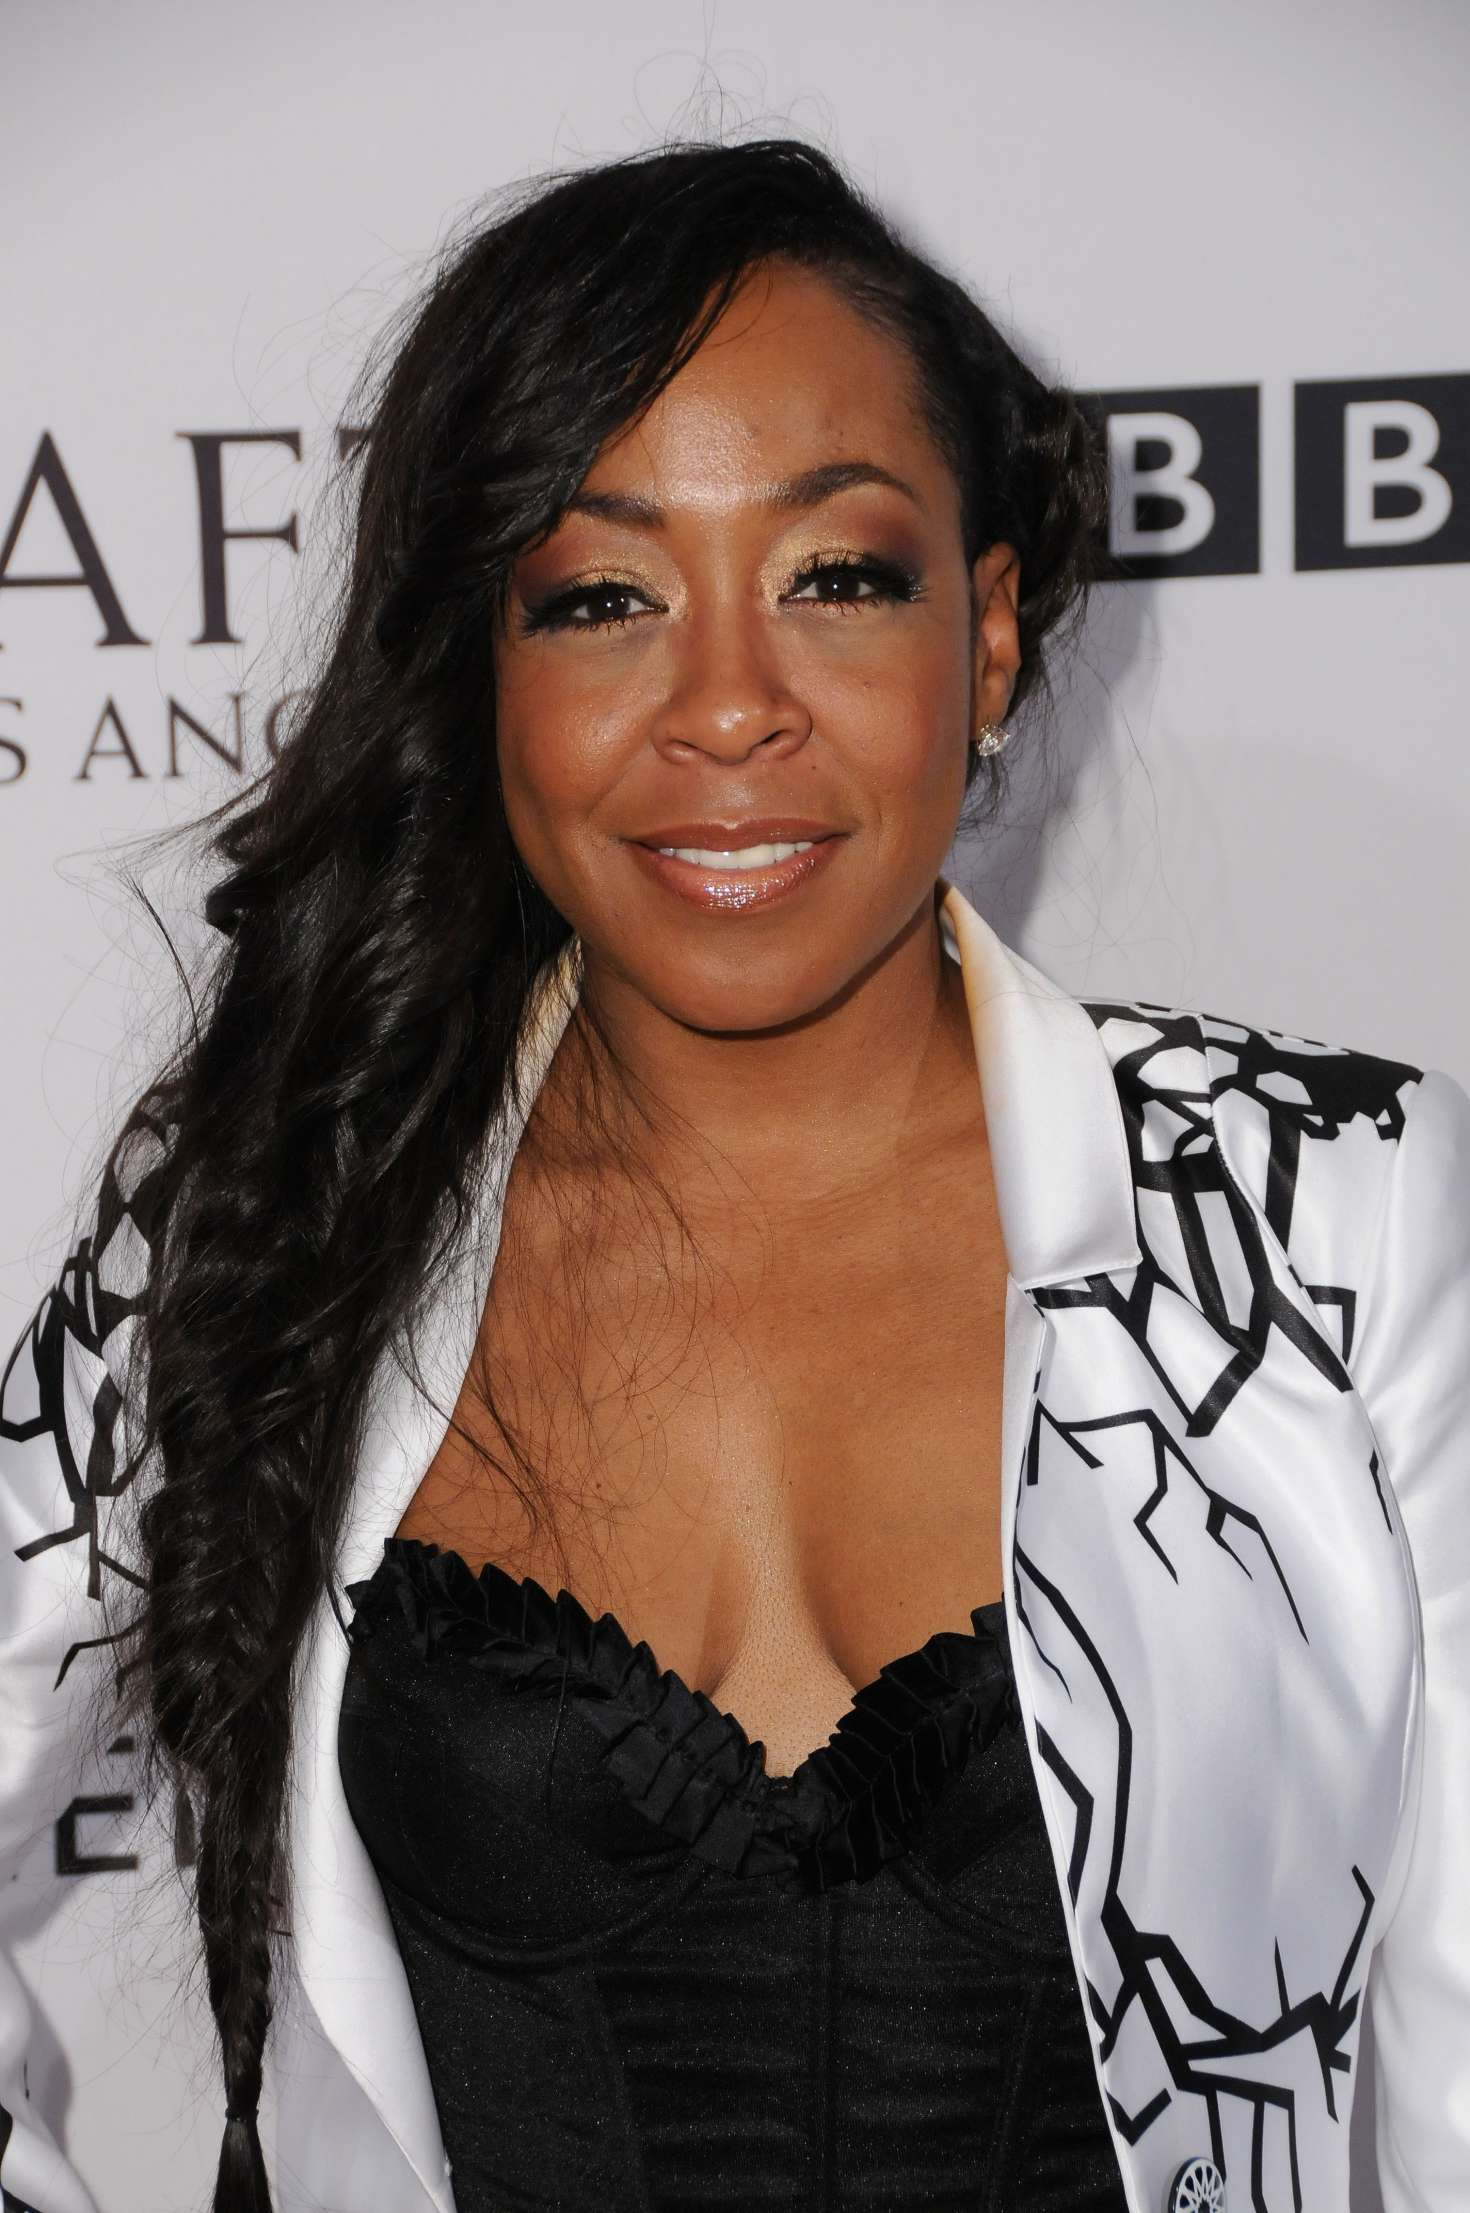 Tichina Arnold nude (25 foto and video), Pussy, Leaked, Twitter, lingerie 2006